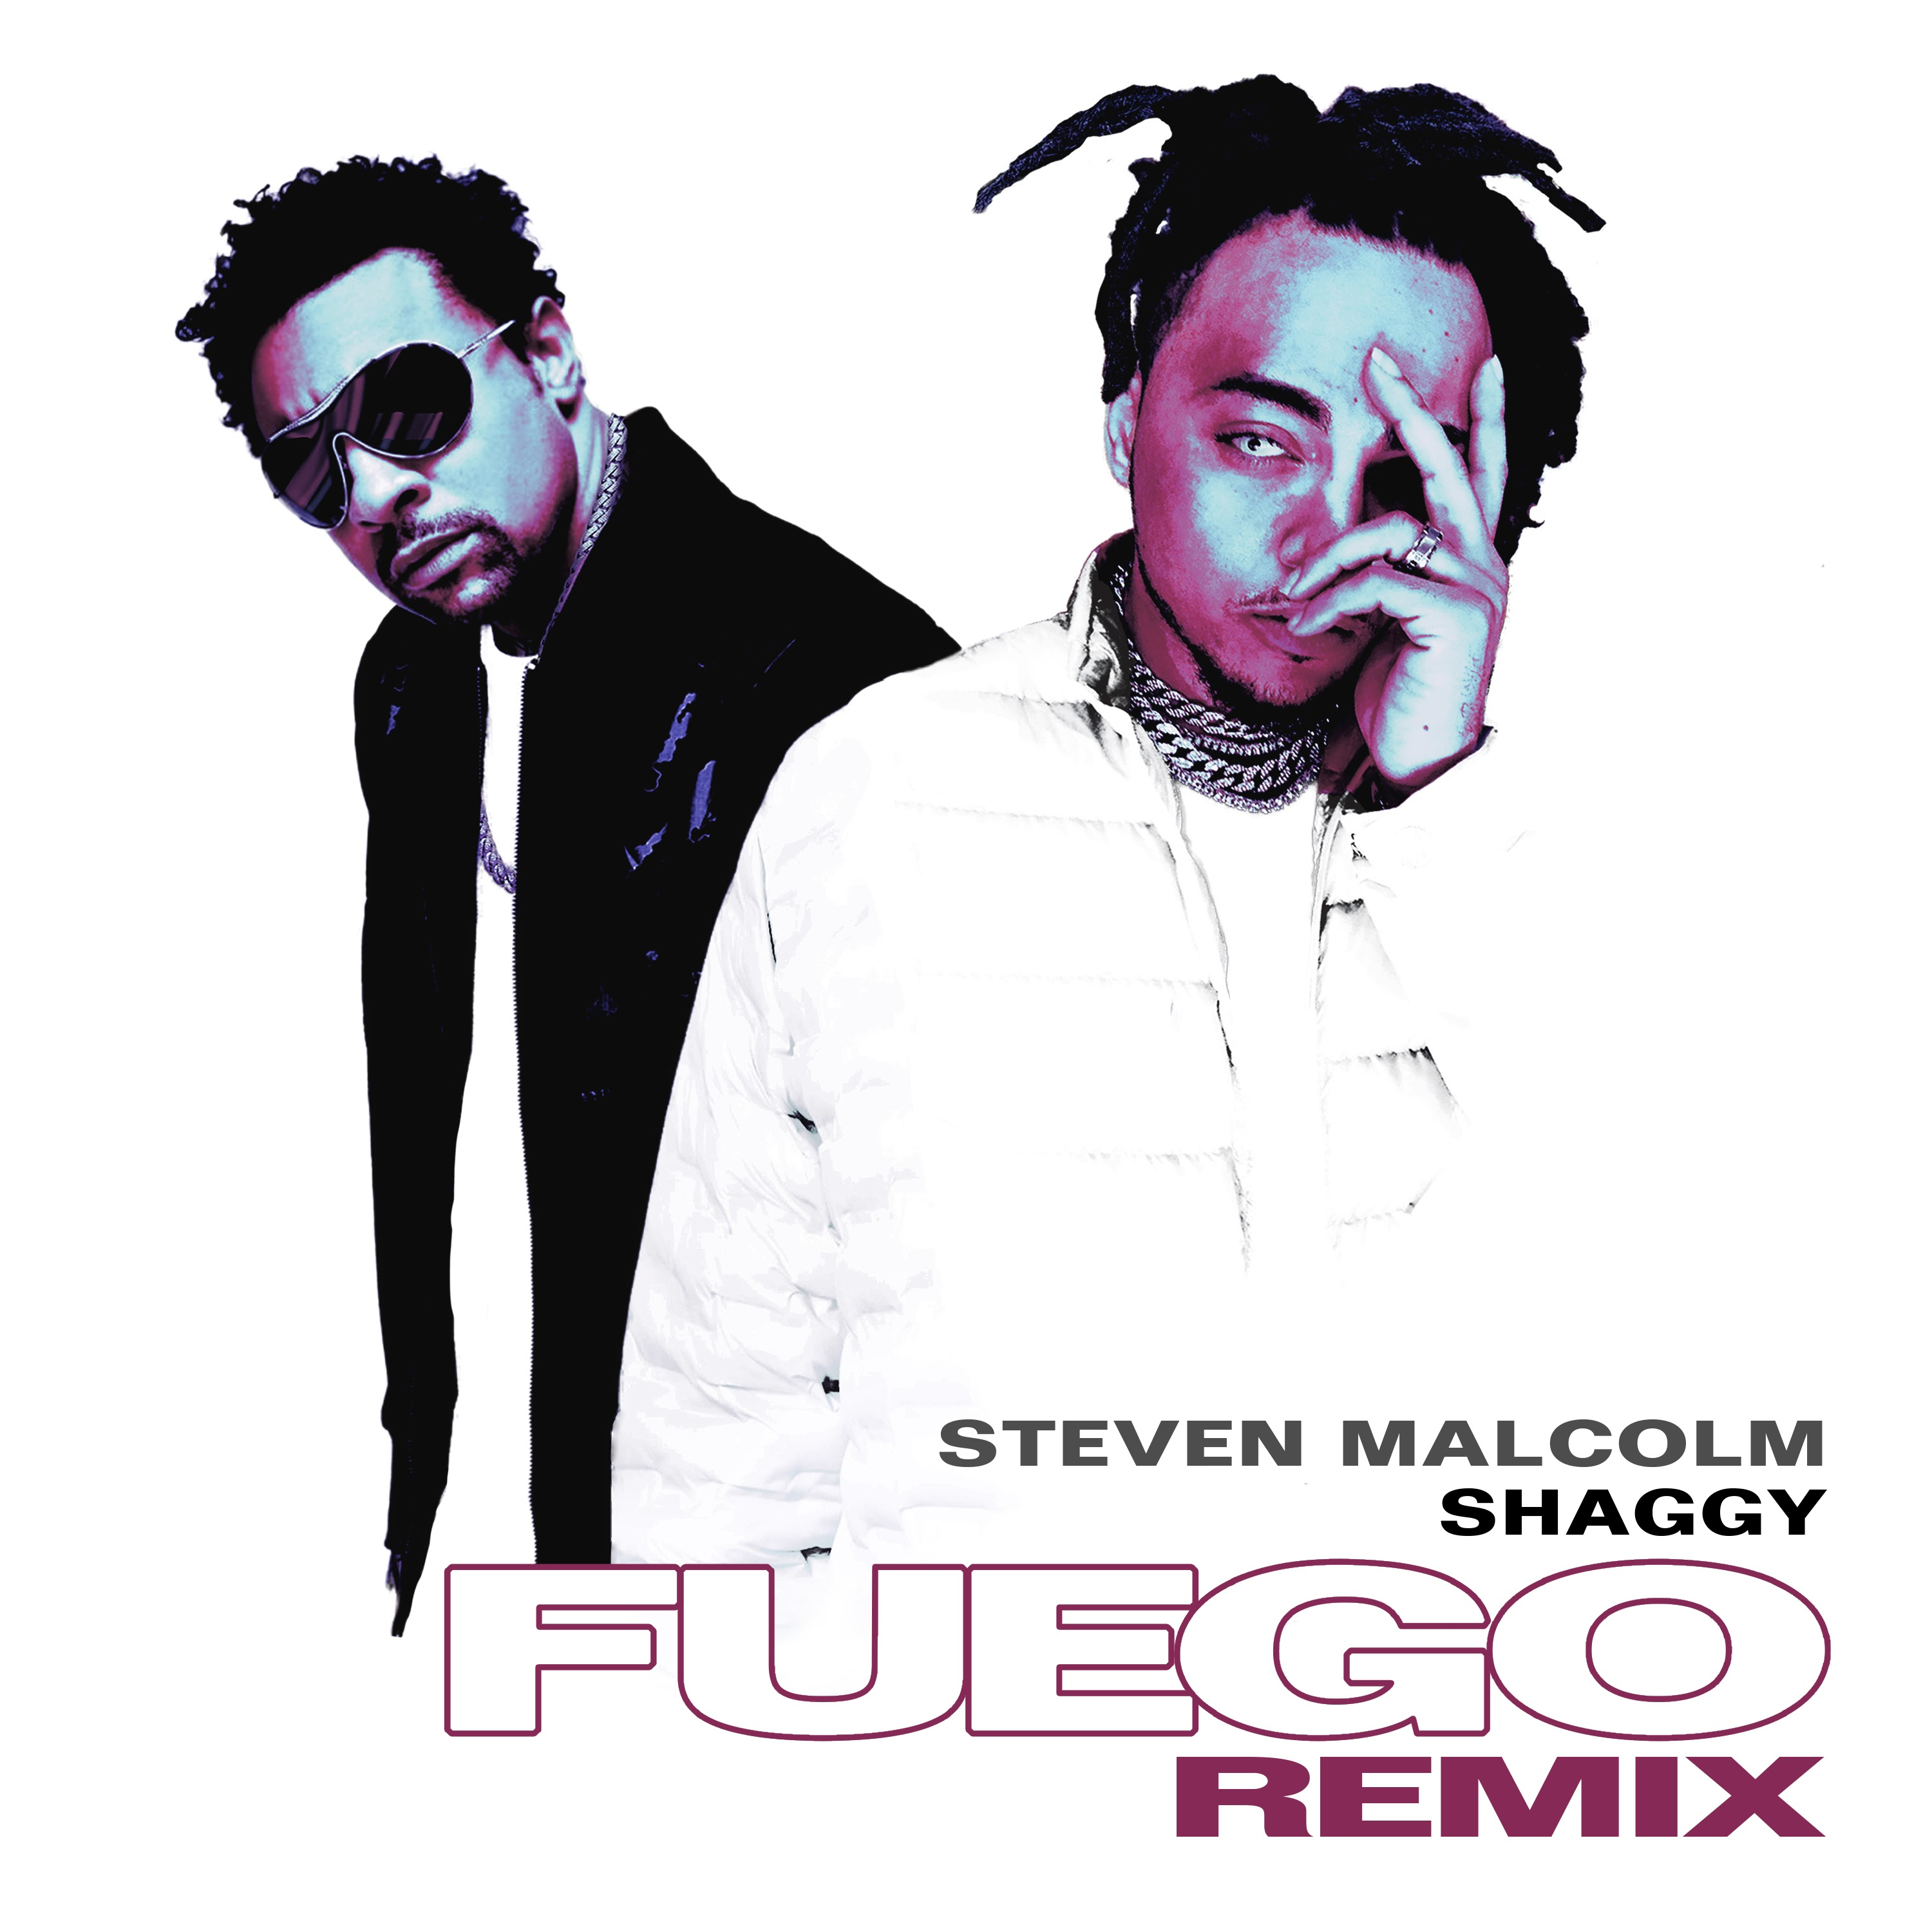 """Steven Malcolm Teams Up with Shaggy For """"Fuego Remix"""""""